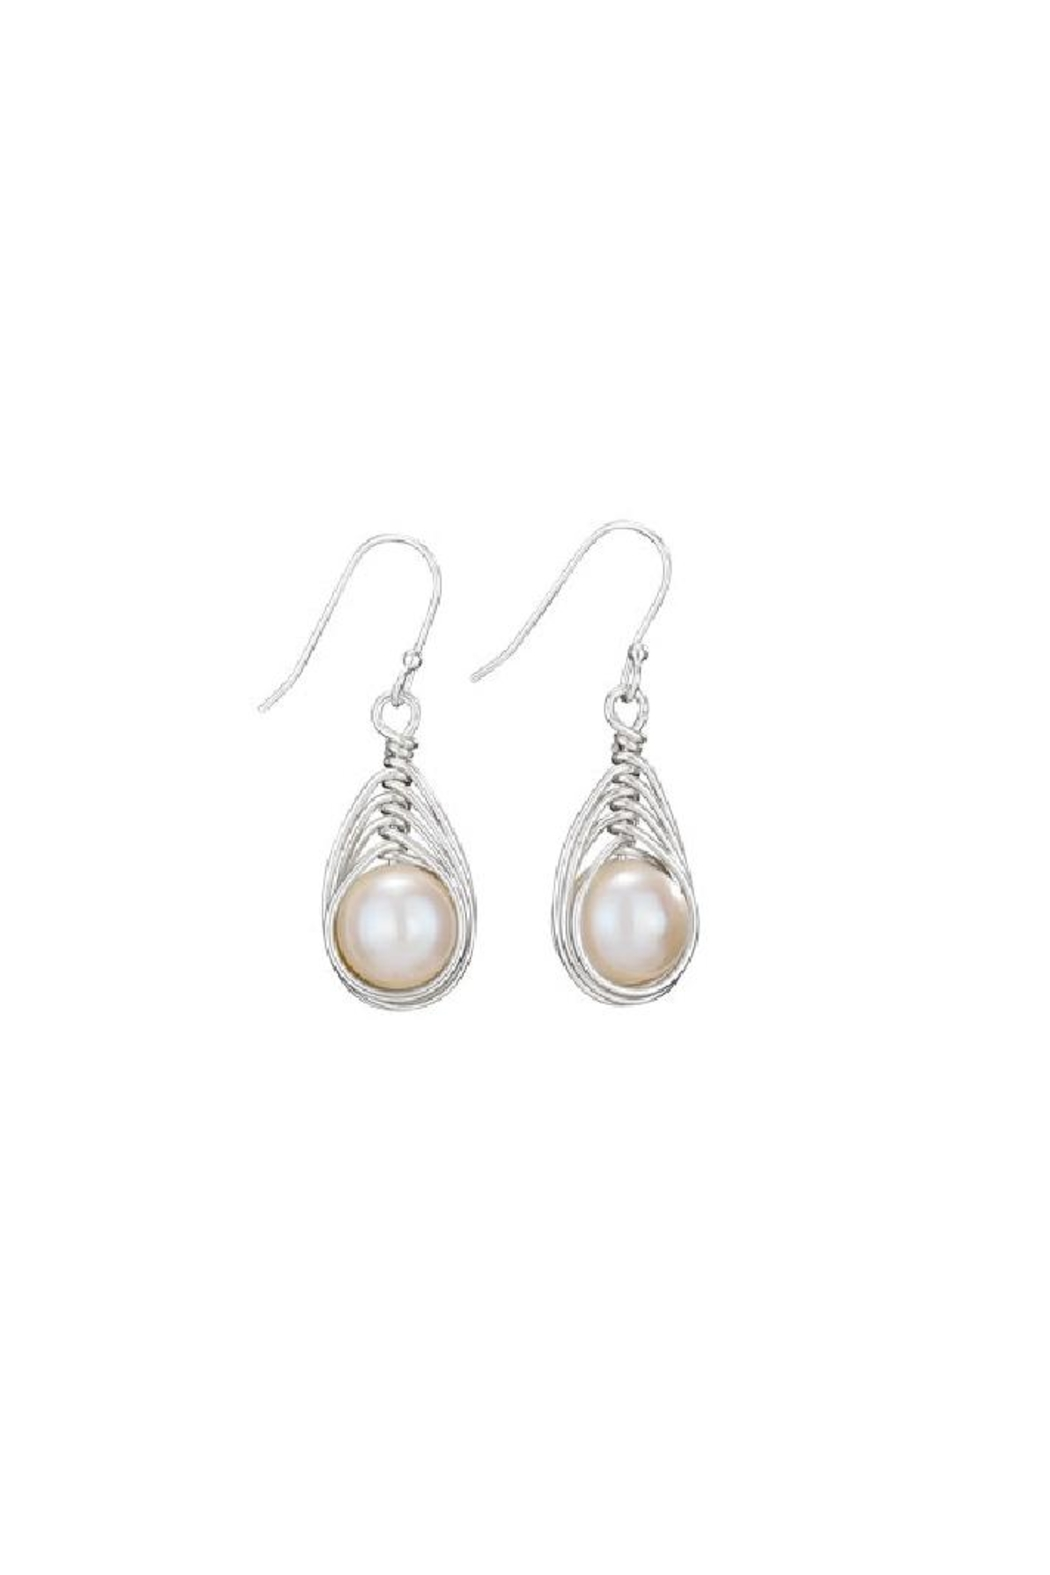 c2ca64f10 Tiger Mountain Pearl Earring from Cambridge by Esmeralda — Shoptiques